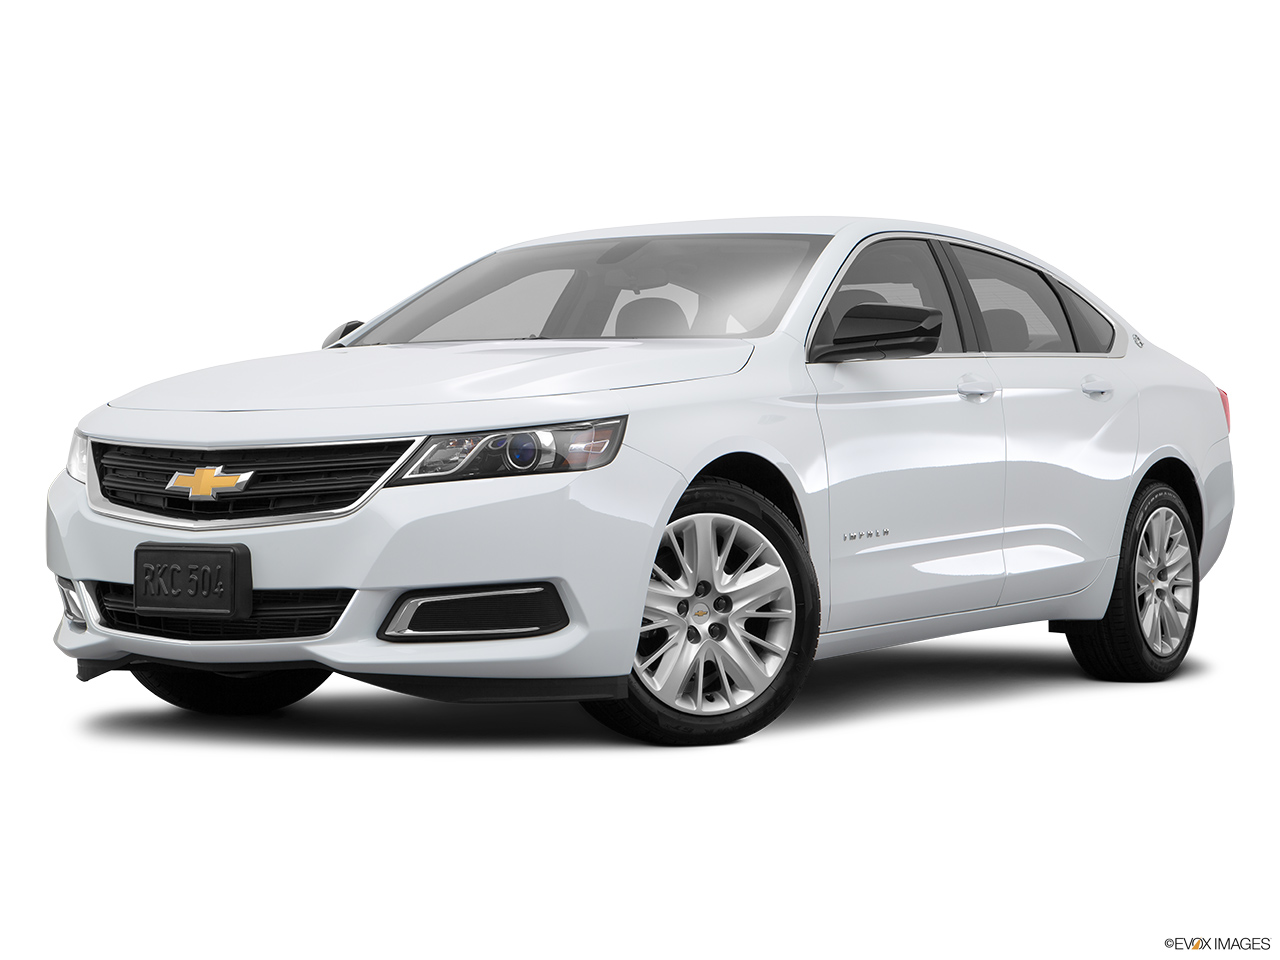 Car Pictures List for Chevrolet Impala 2018 3.6L LS (UAE ...